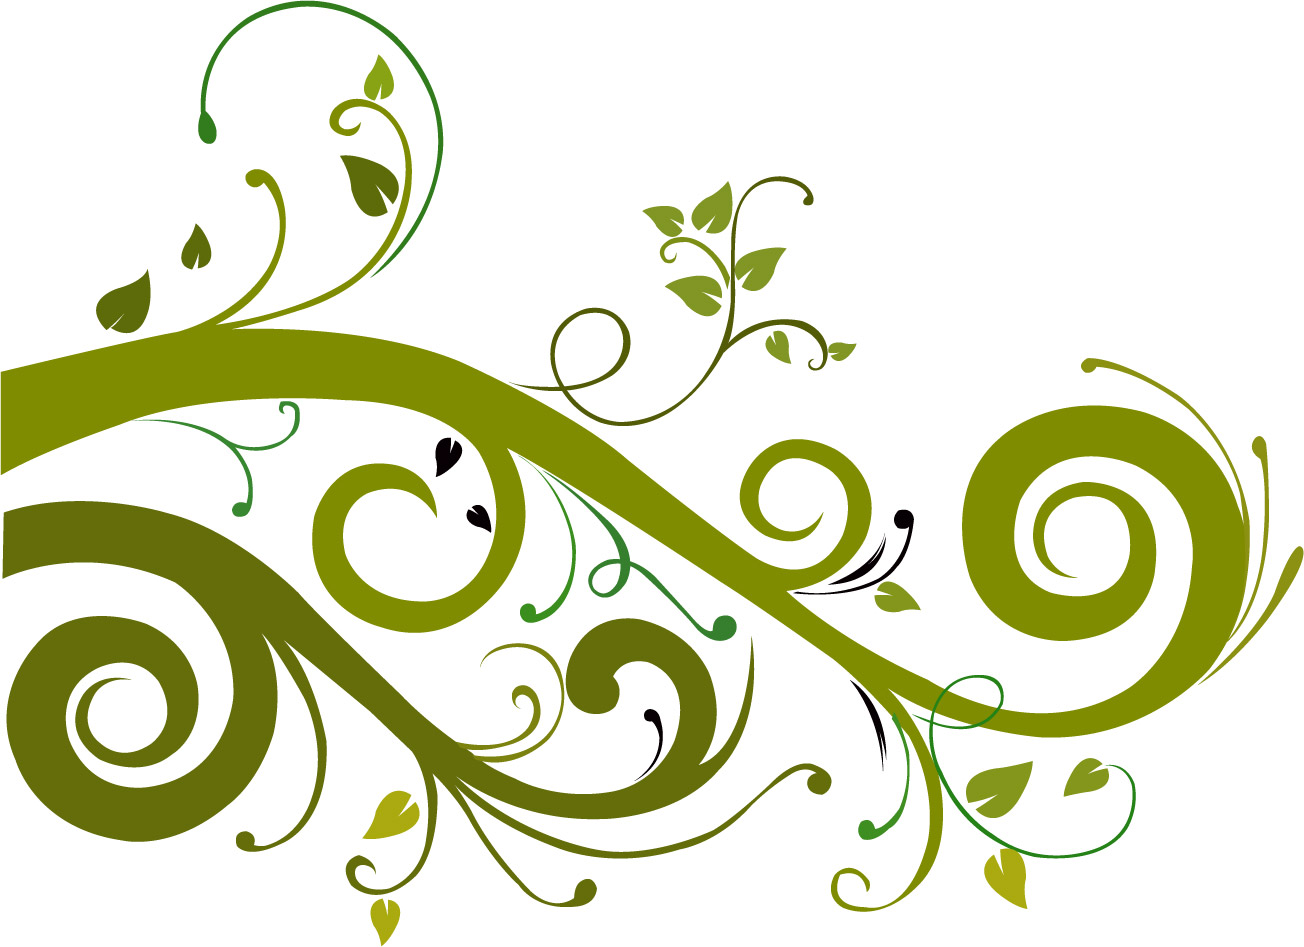 Flower Vector Graphic 7554 Hd Wallpapers In Vector N Designs